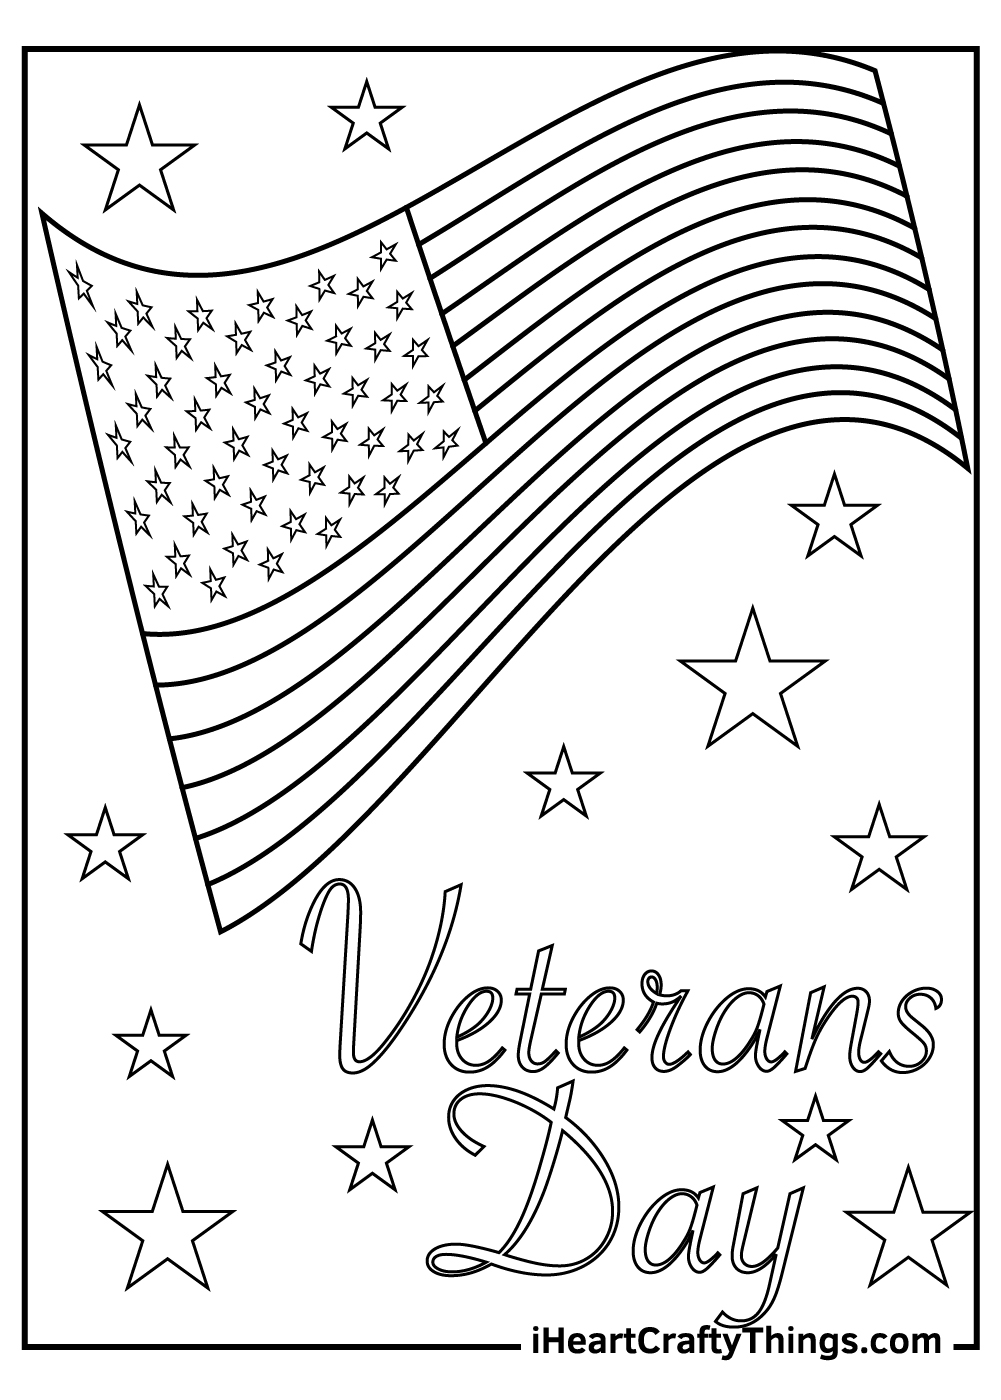 Veteran's Day Coloring Pages for adults